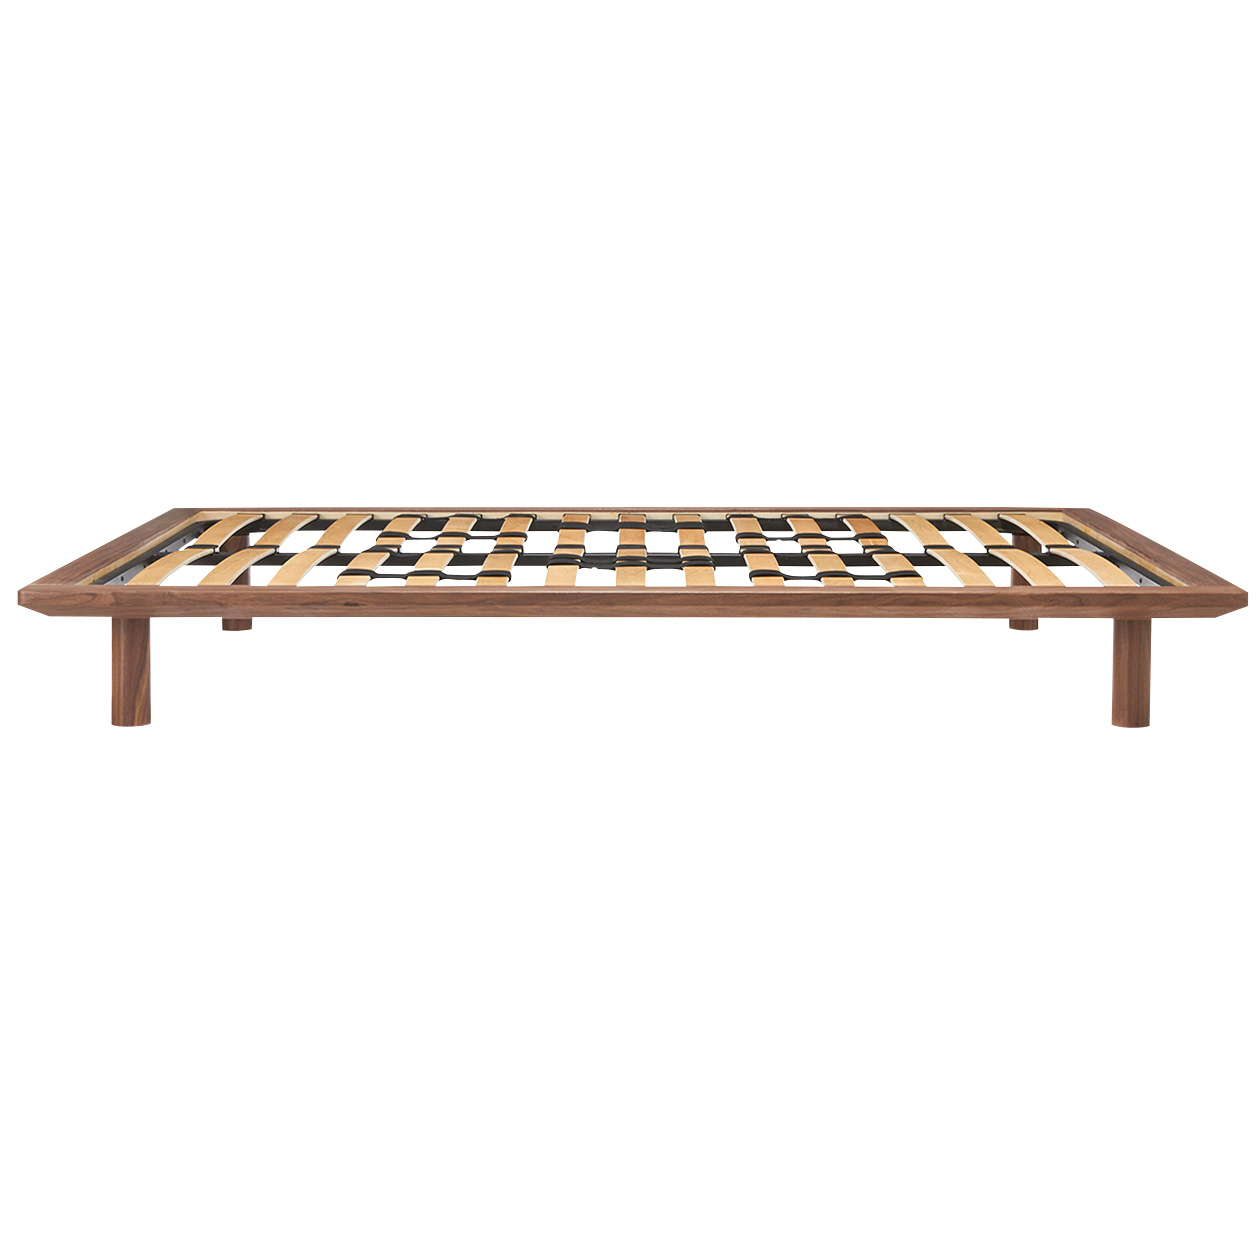 hk250000 walnut wood bed frame brn double